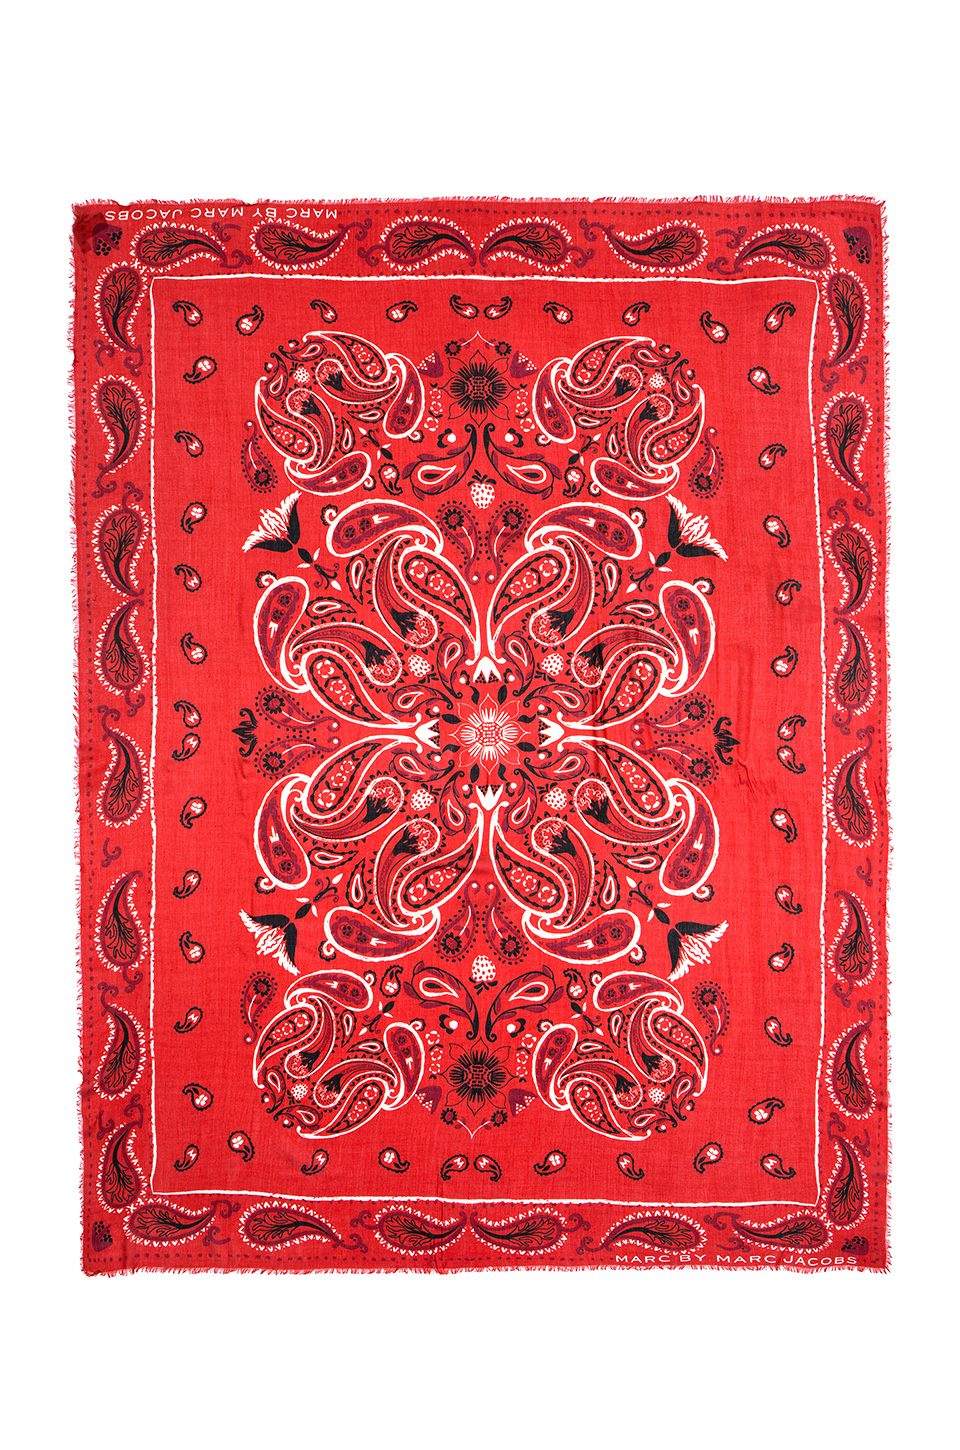 Lyst - Marc By Marc Jacobs William Paisley Scarf in Red 1ab876f008d